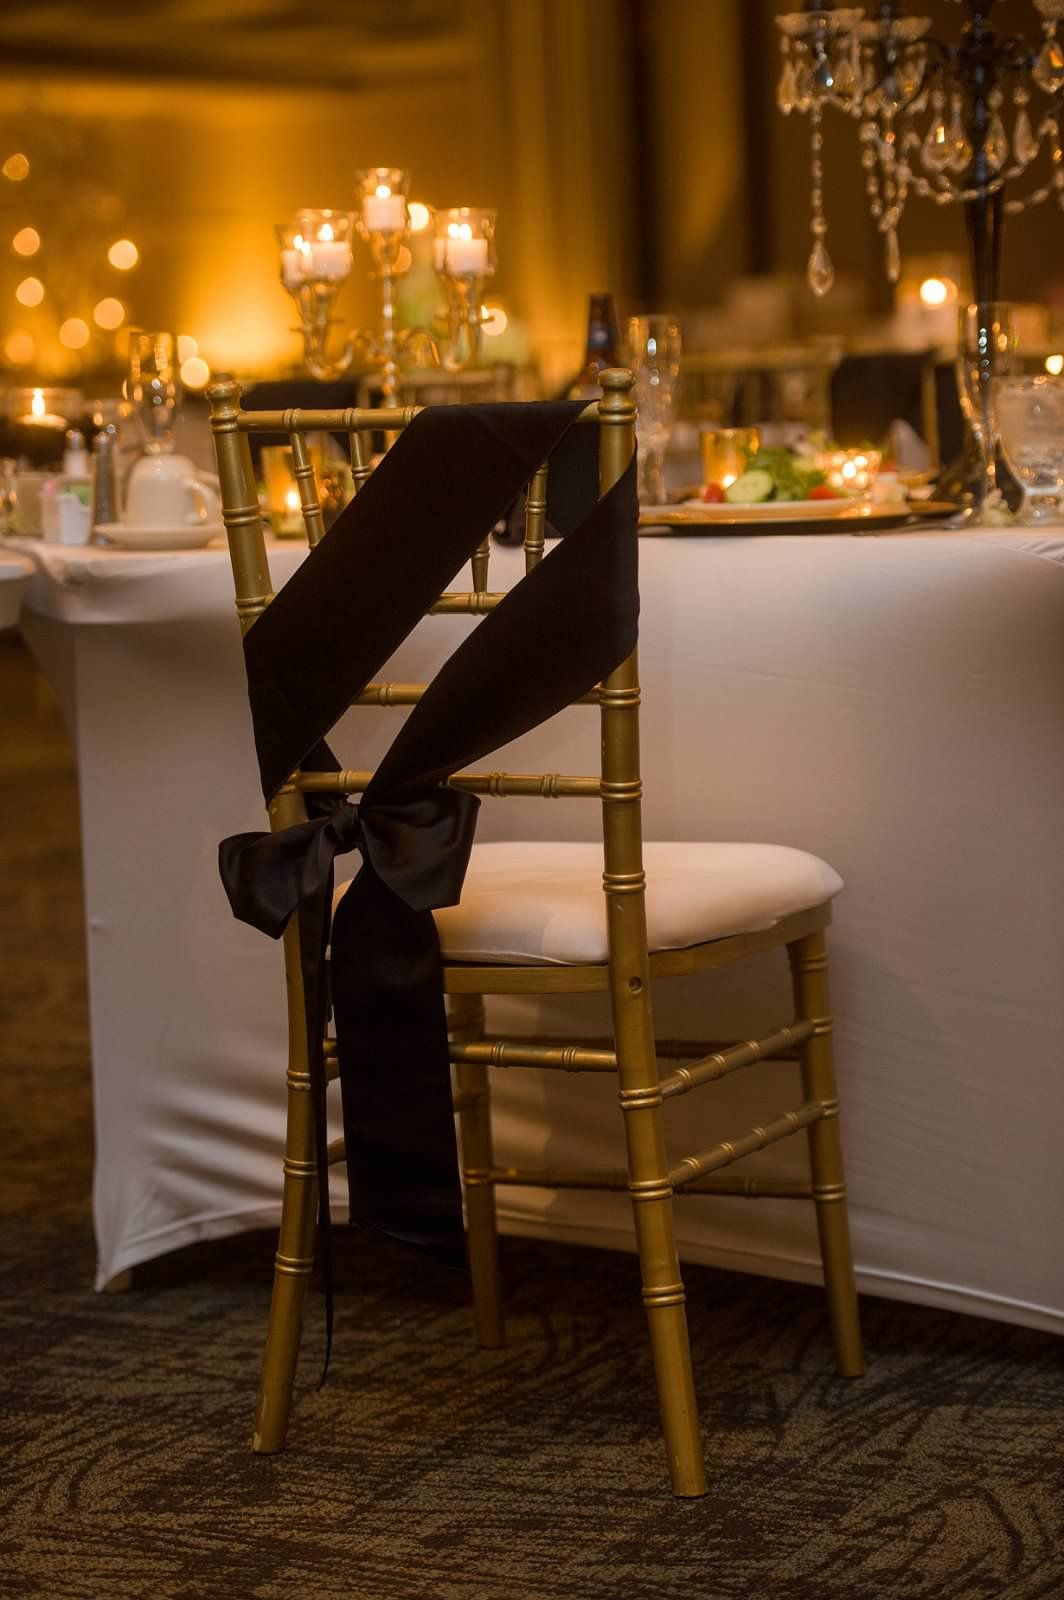 The Great Gatsby Wedding Of Dreams The Great Gatsby Pinterest